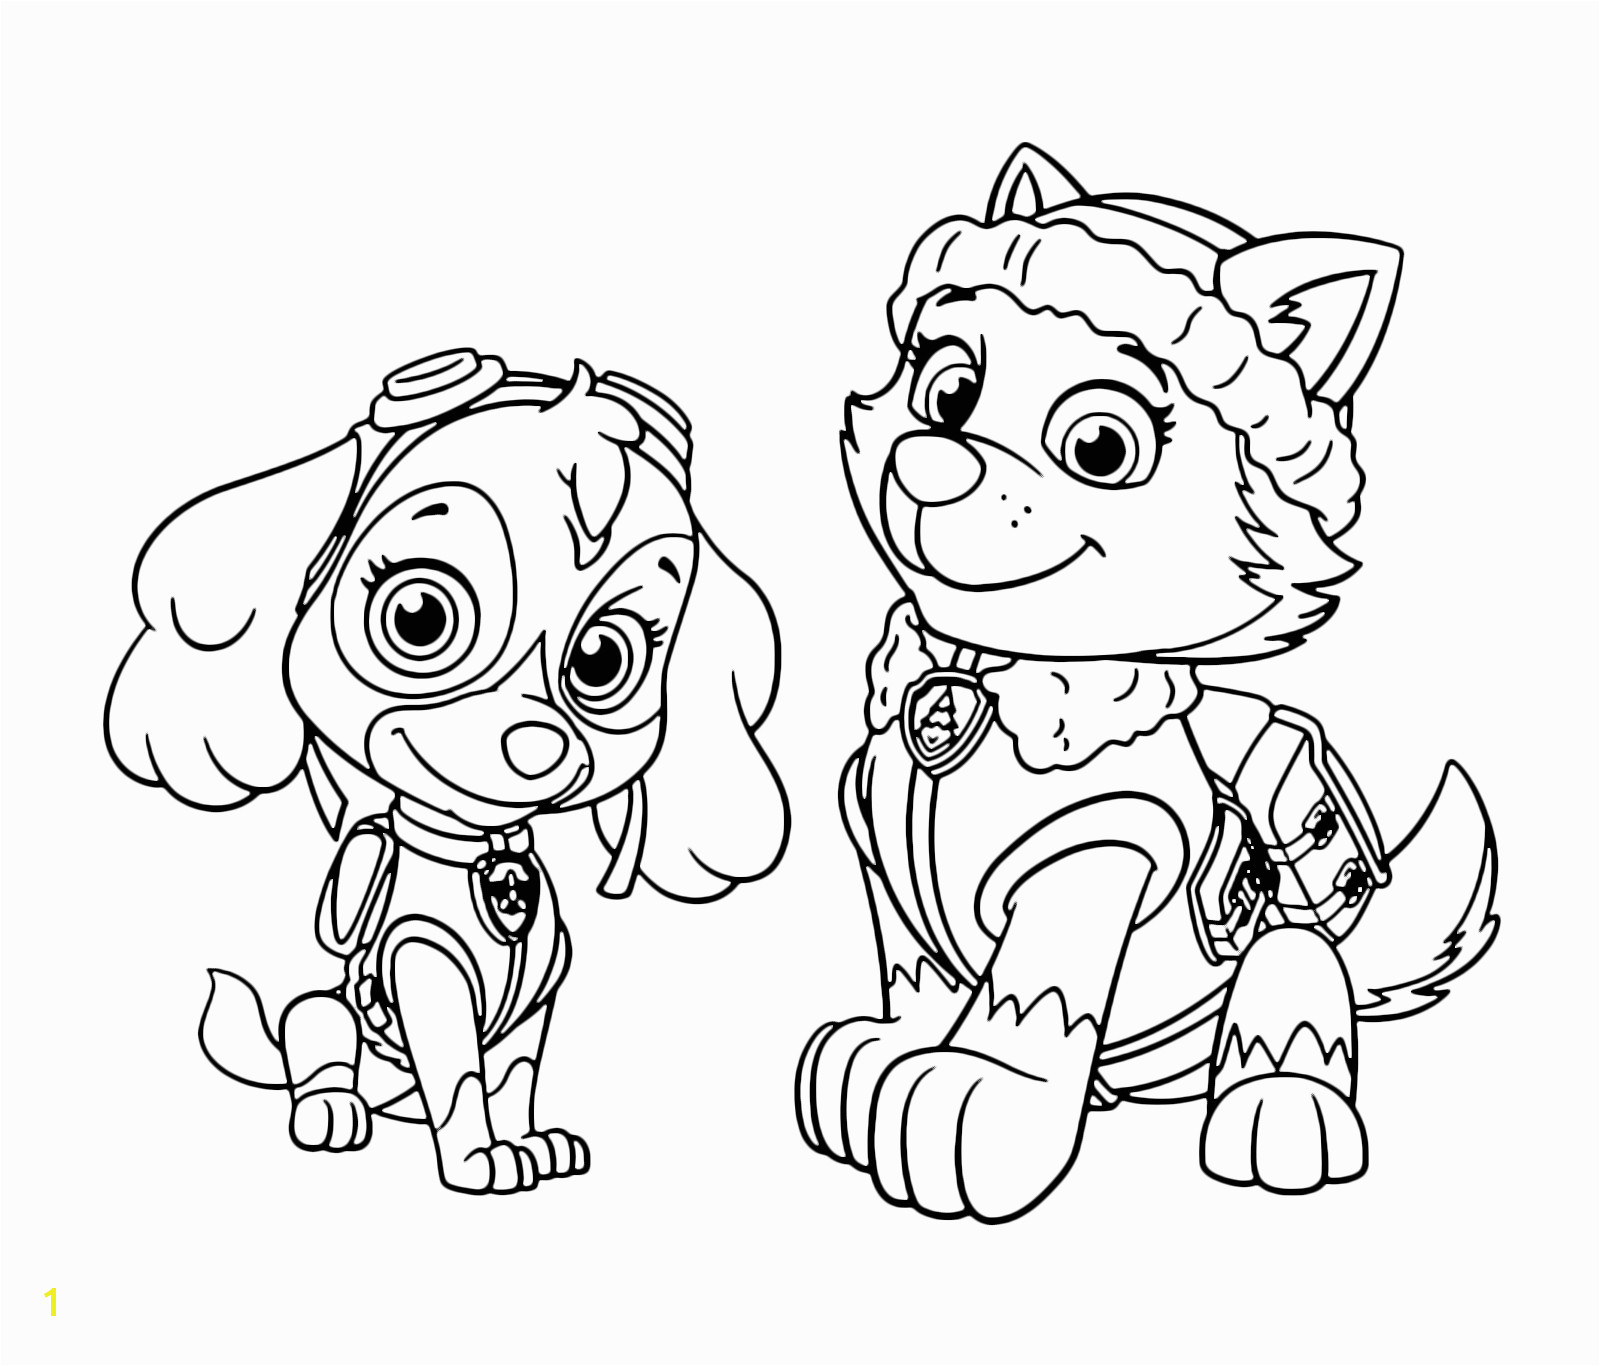 Skye Paw Patrol Coloring Pages To Print Free Books Throughout